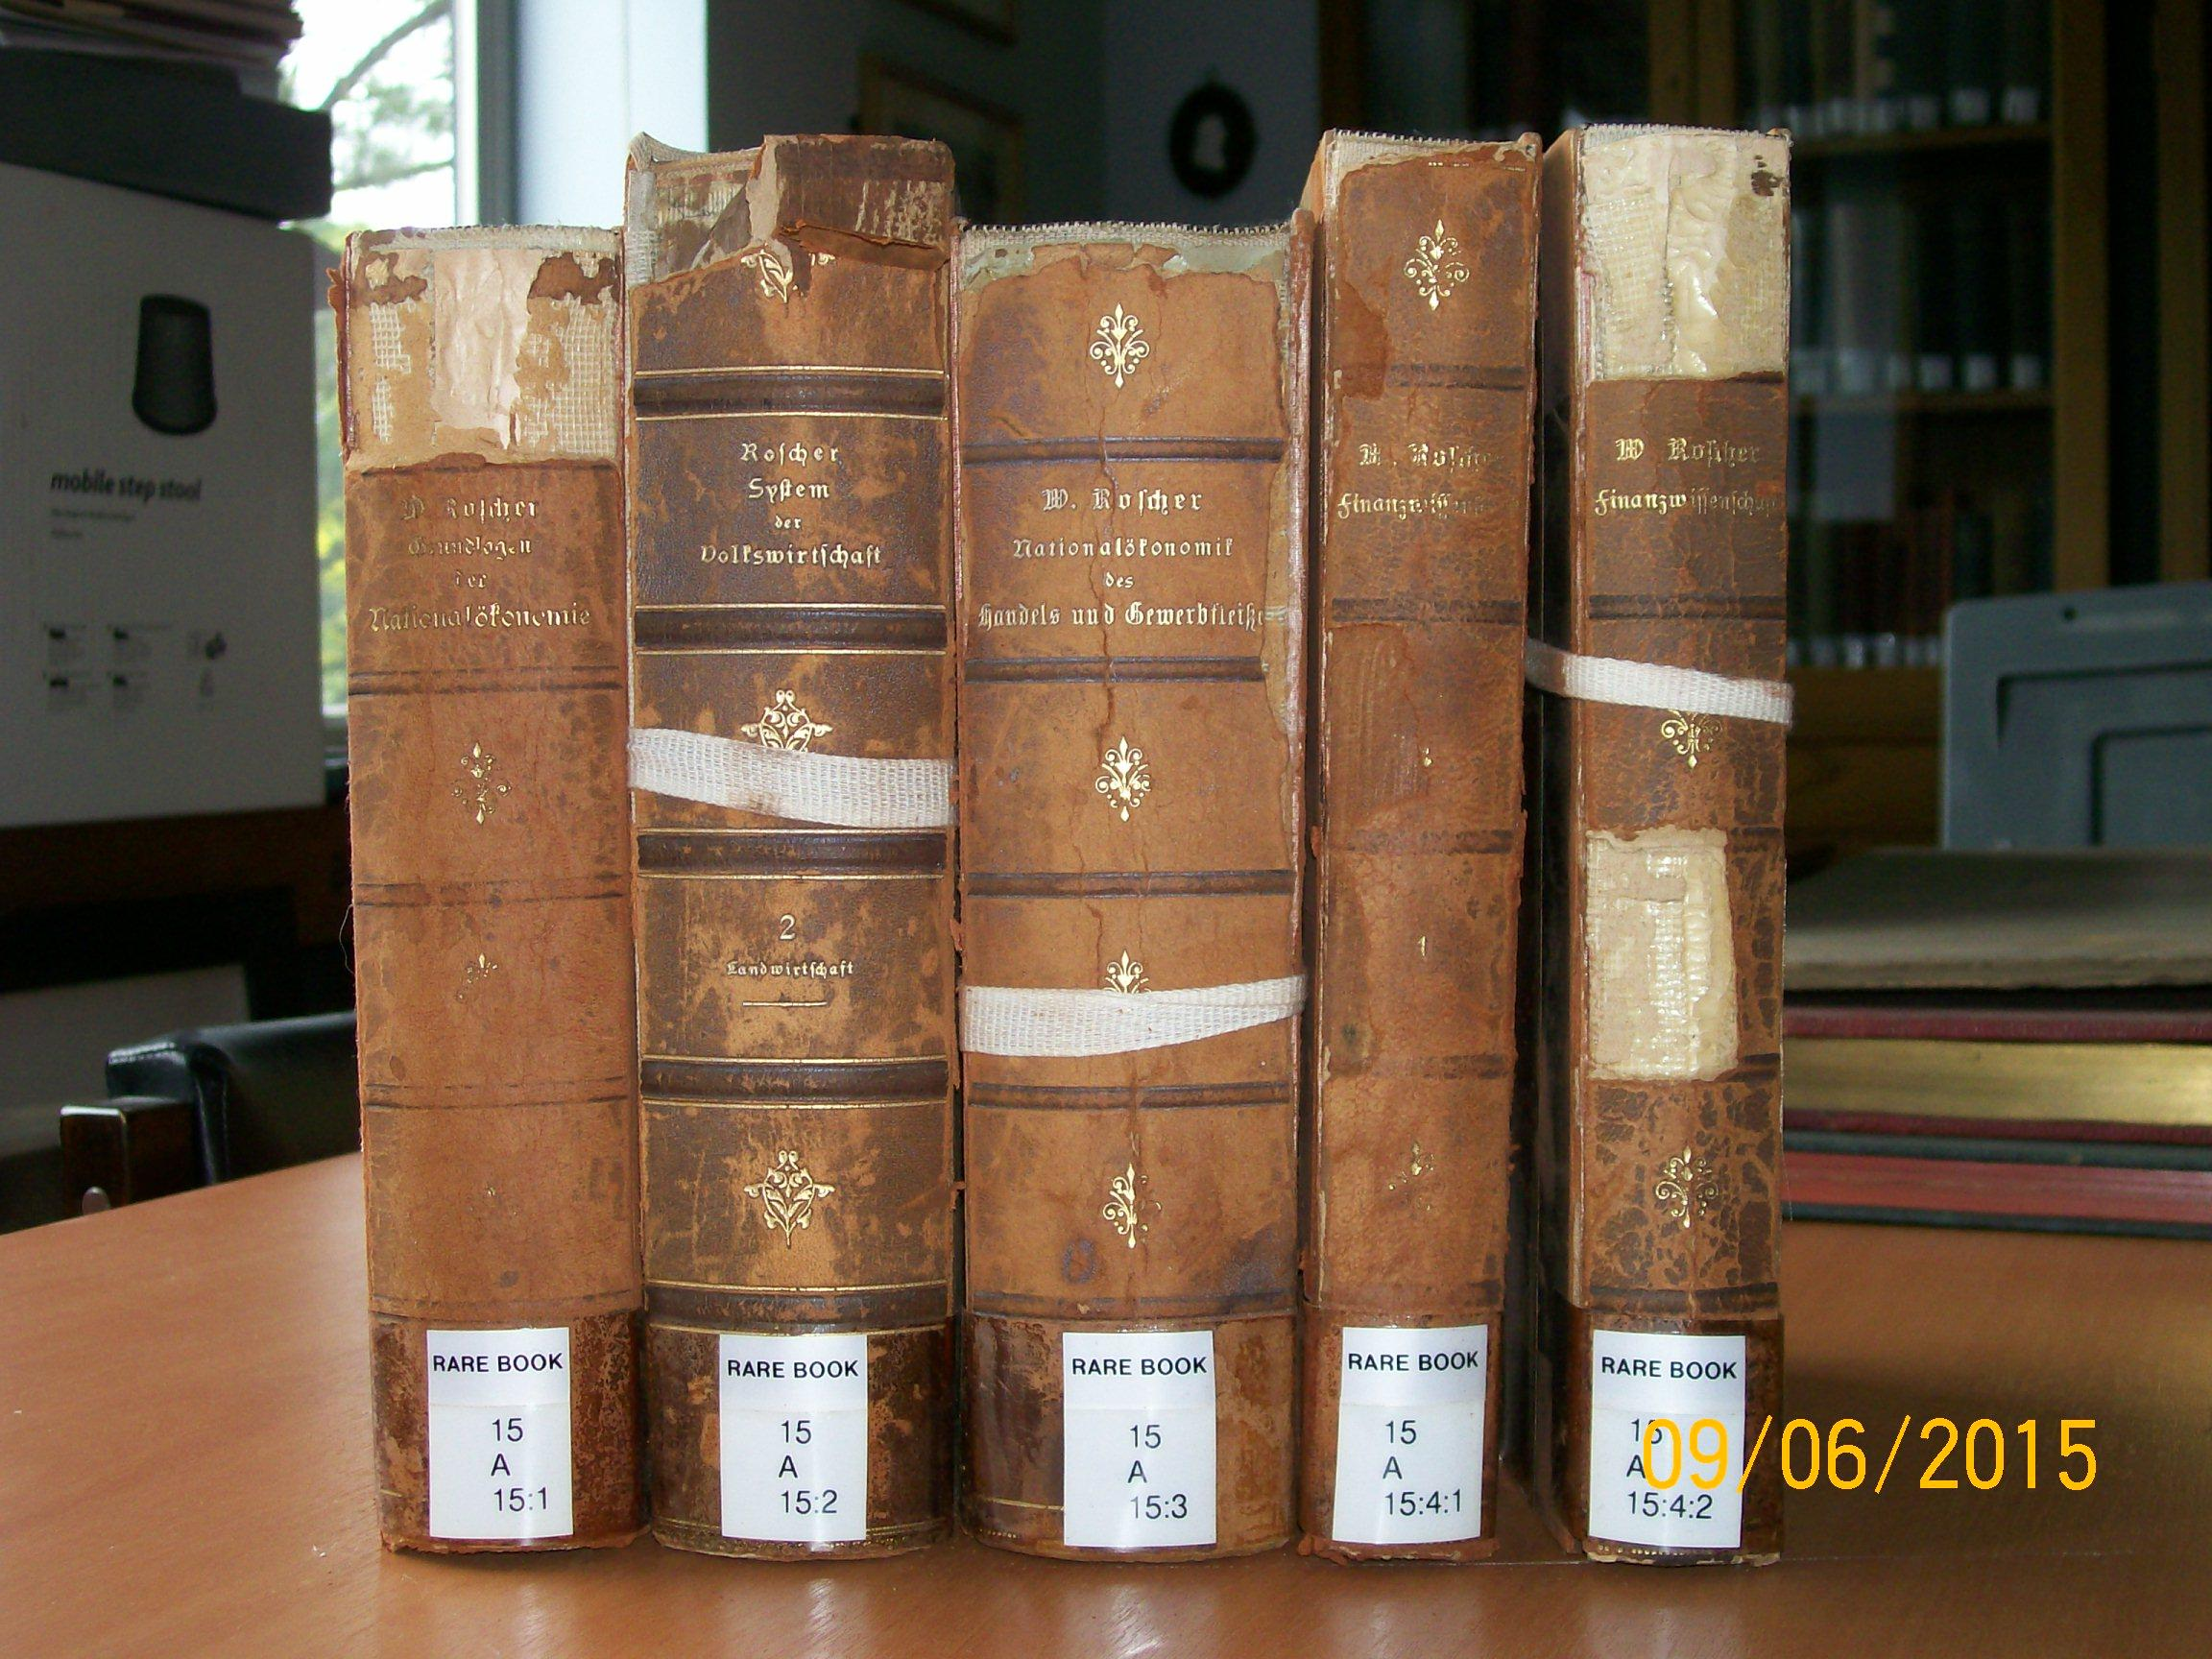 Transfer of Rare Books from Marshall Library to Cambridge University Library's Rare Books Department